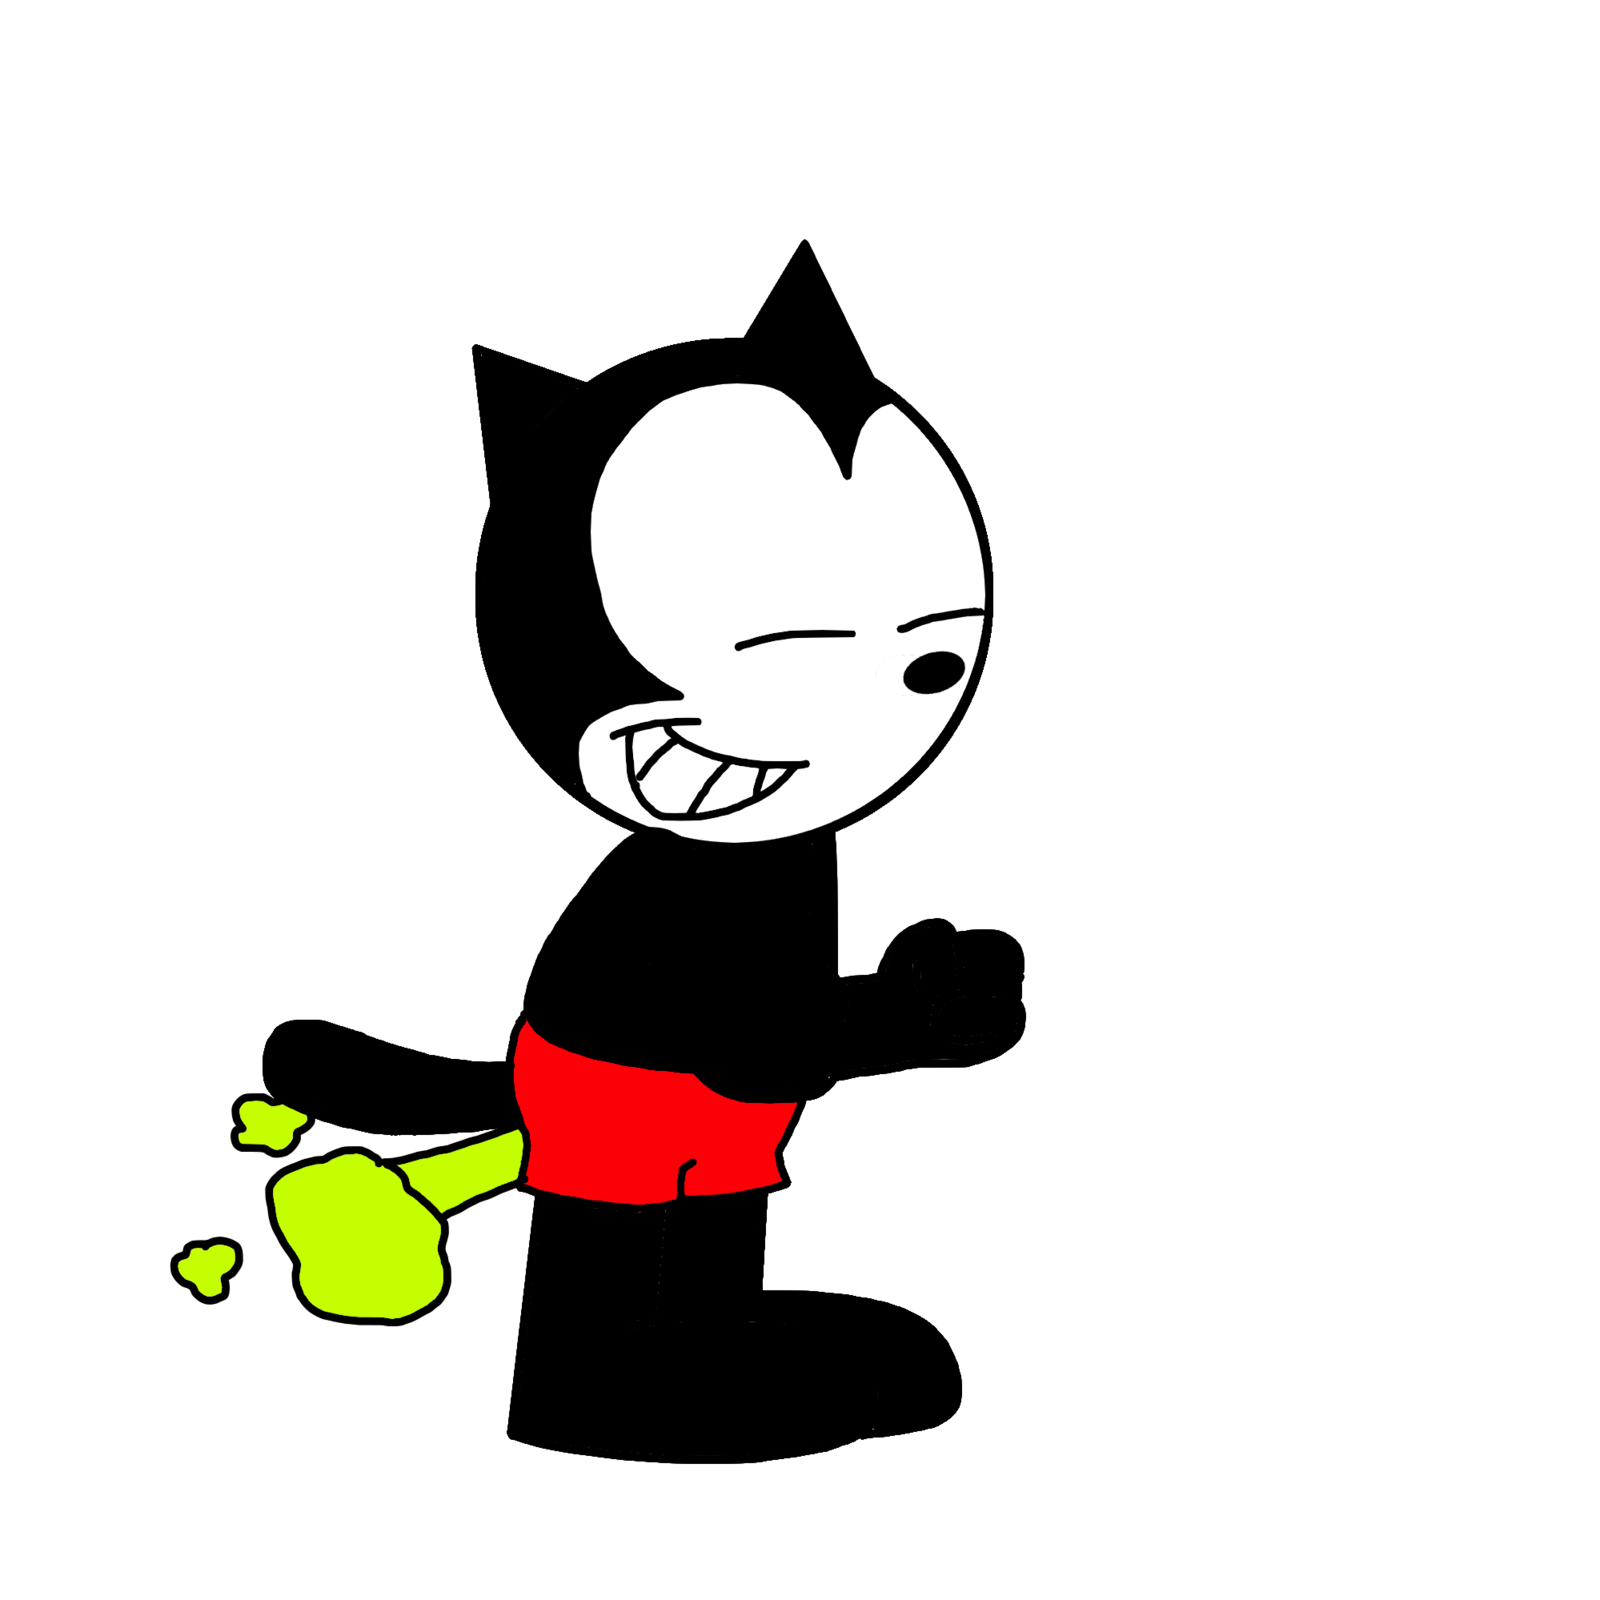 Fart clipart lines. Homer the cat farting